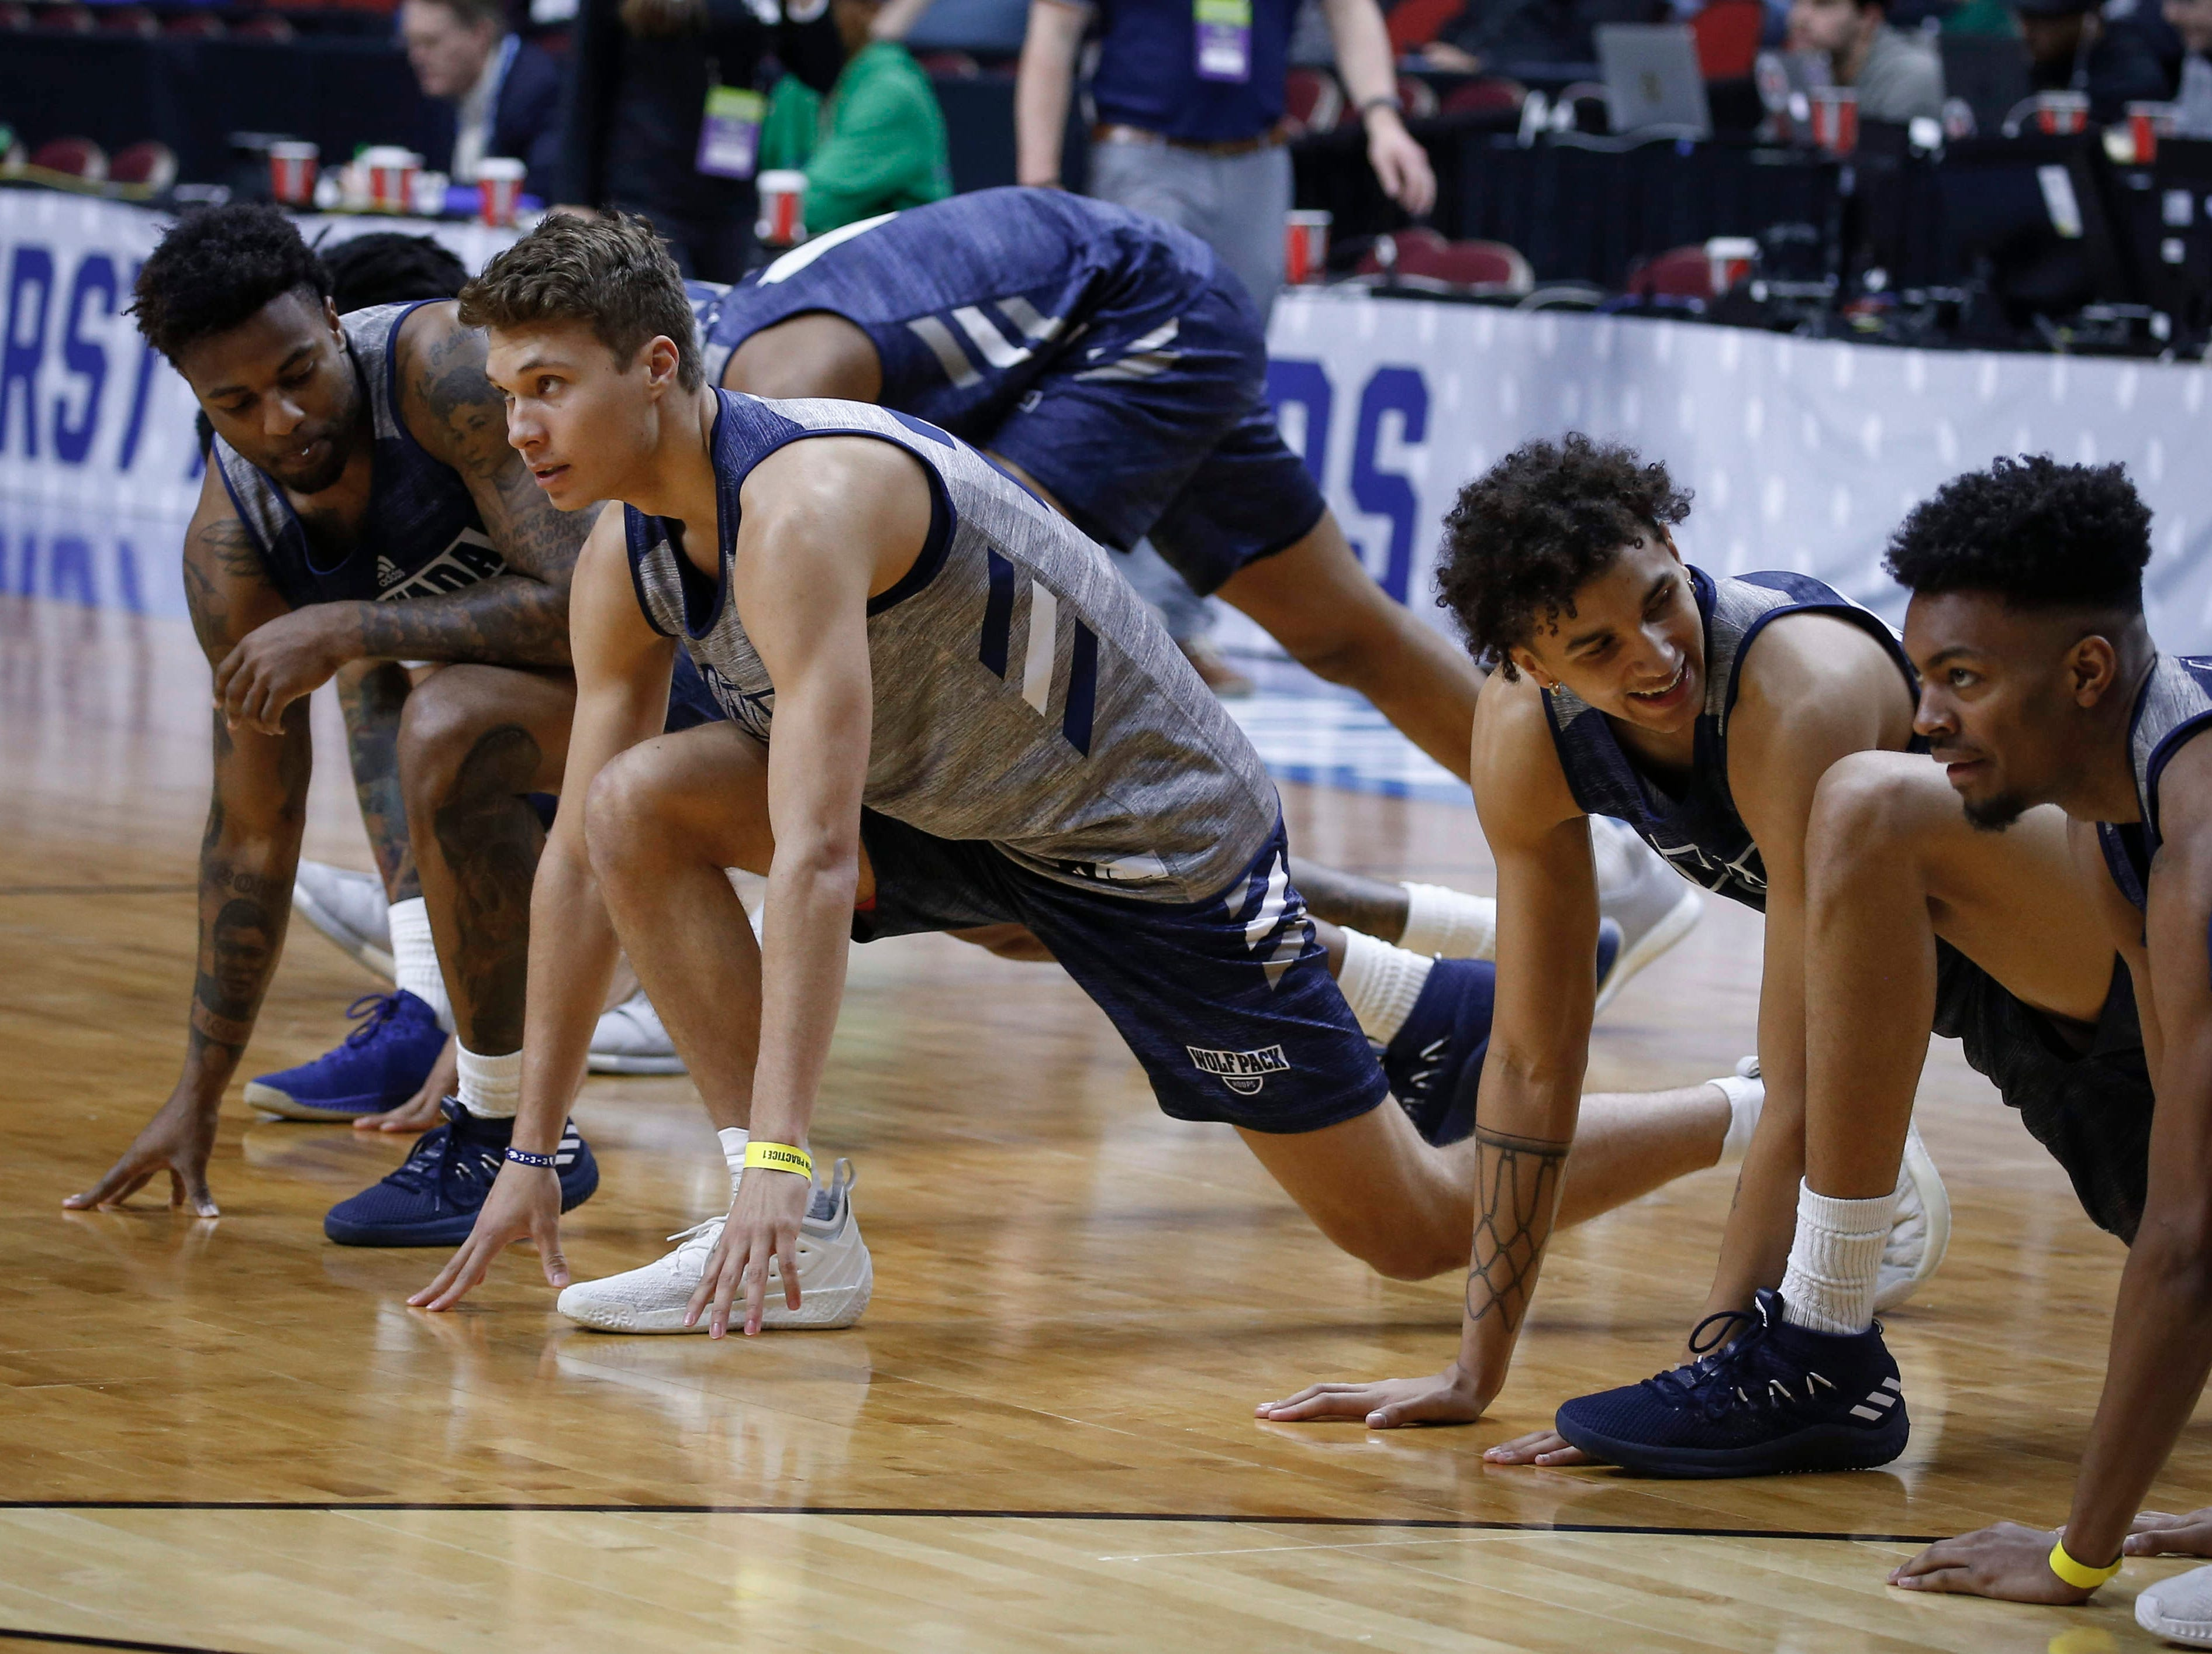 Members of the Nevada basketball team warm up prior to the start of practice on Wednesday, March 20, 2019, at Wells Fargo Arena in Des Moines, Iowa.